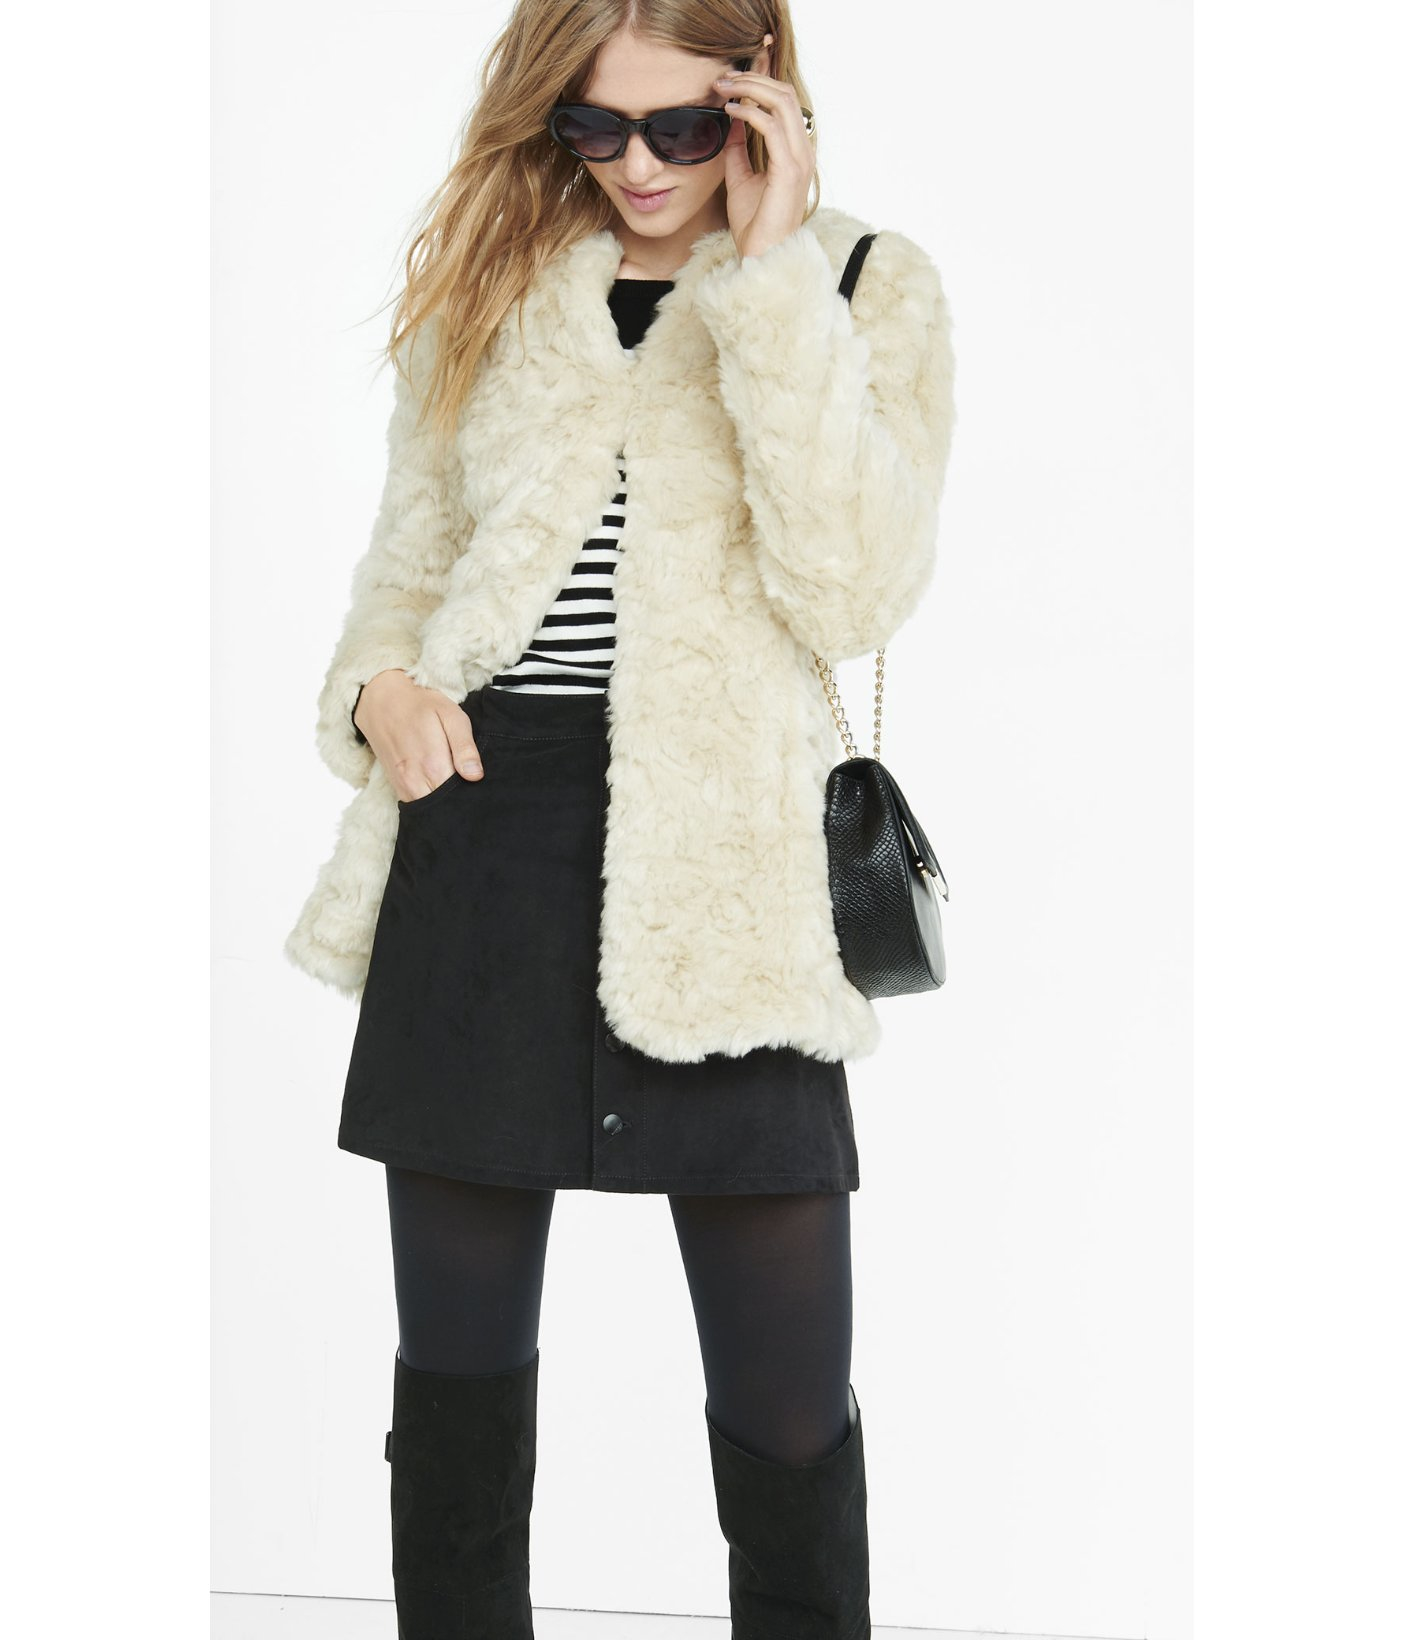 Express Ivory Crushed Faux Fur Coat in White | Lyst